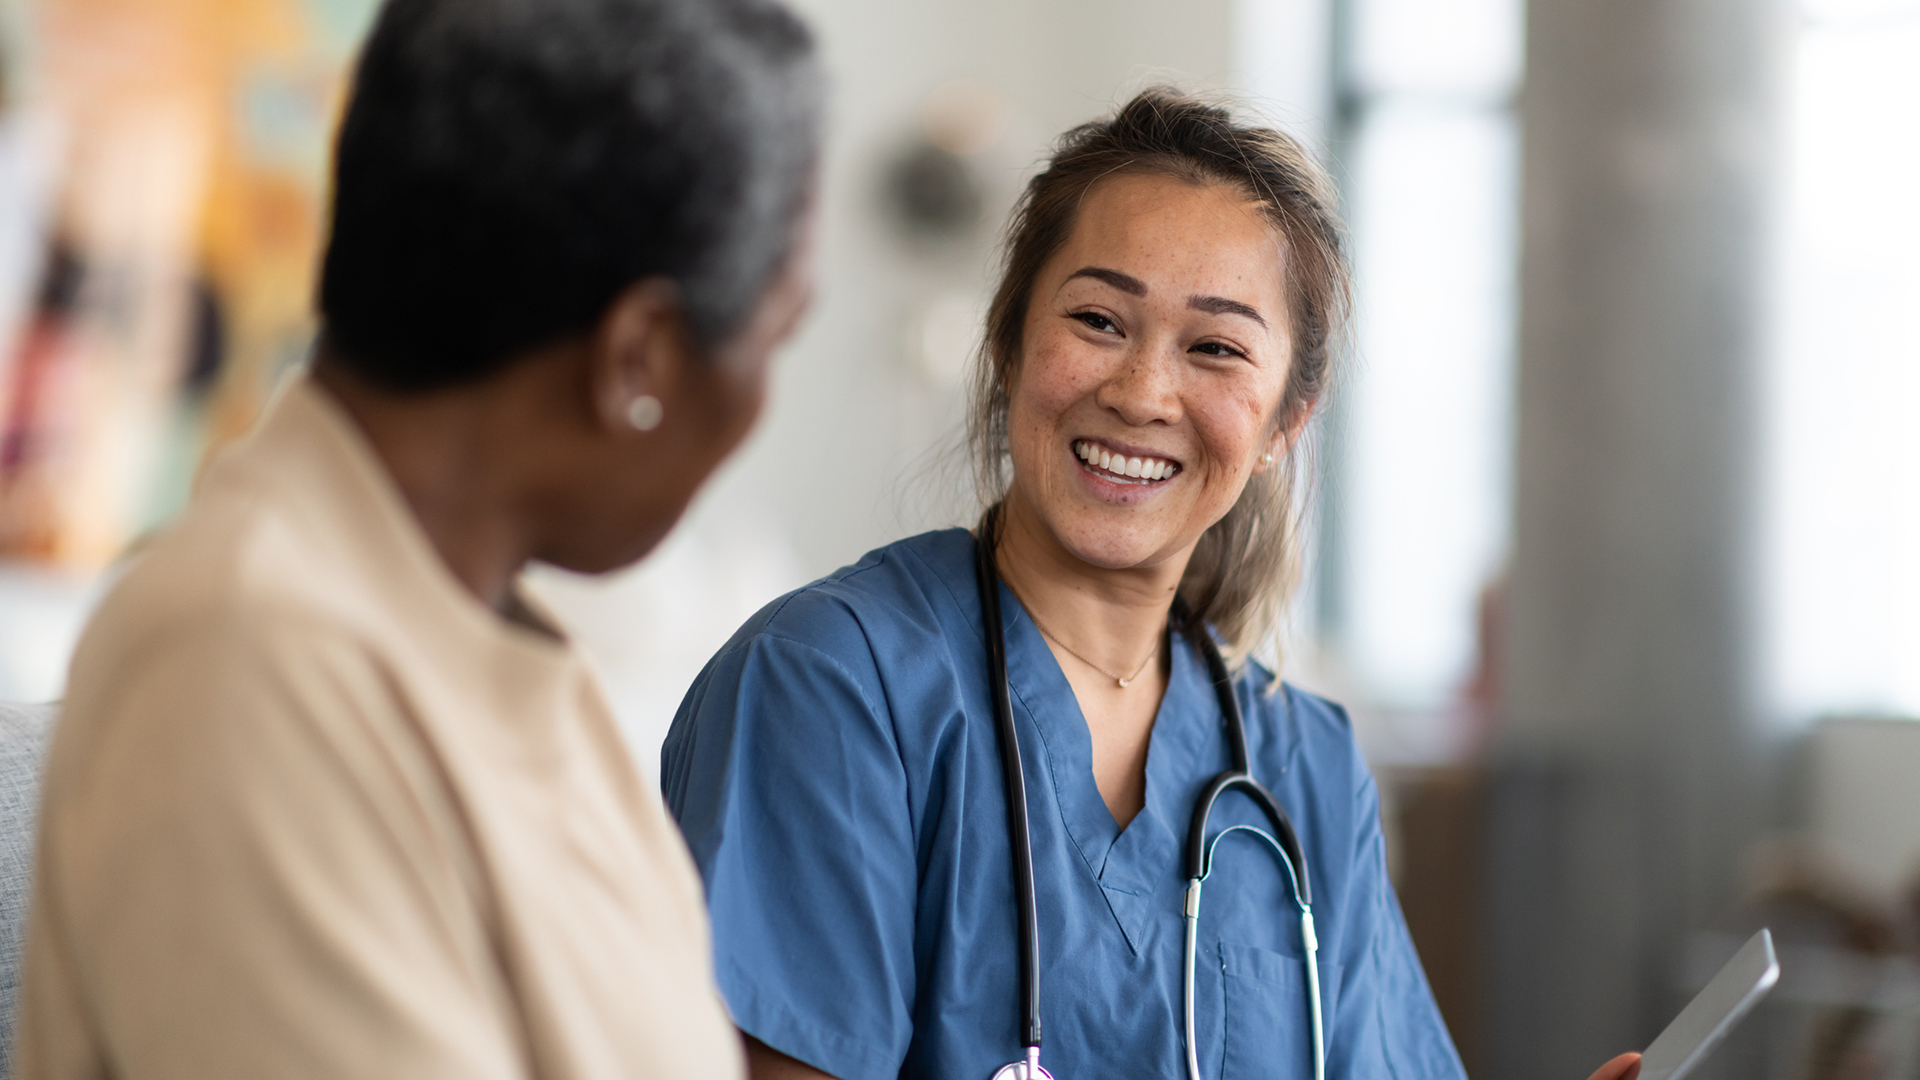 5 Things Your Nurse Wants You to Know